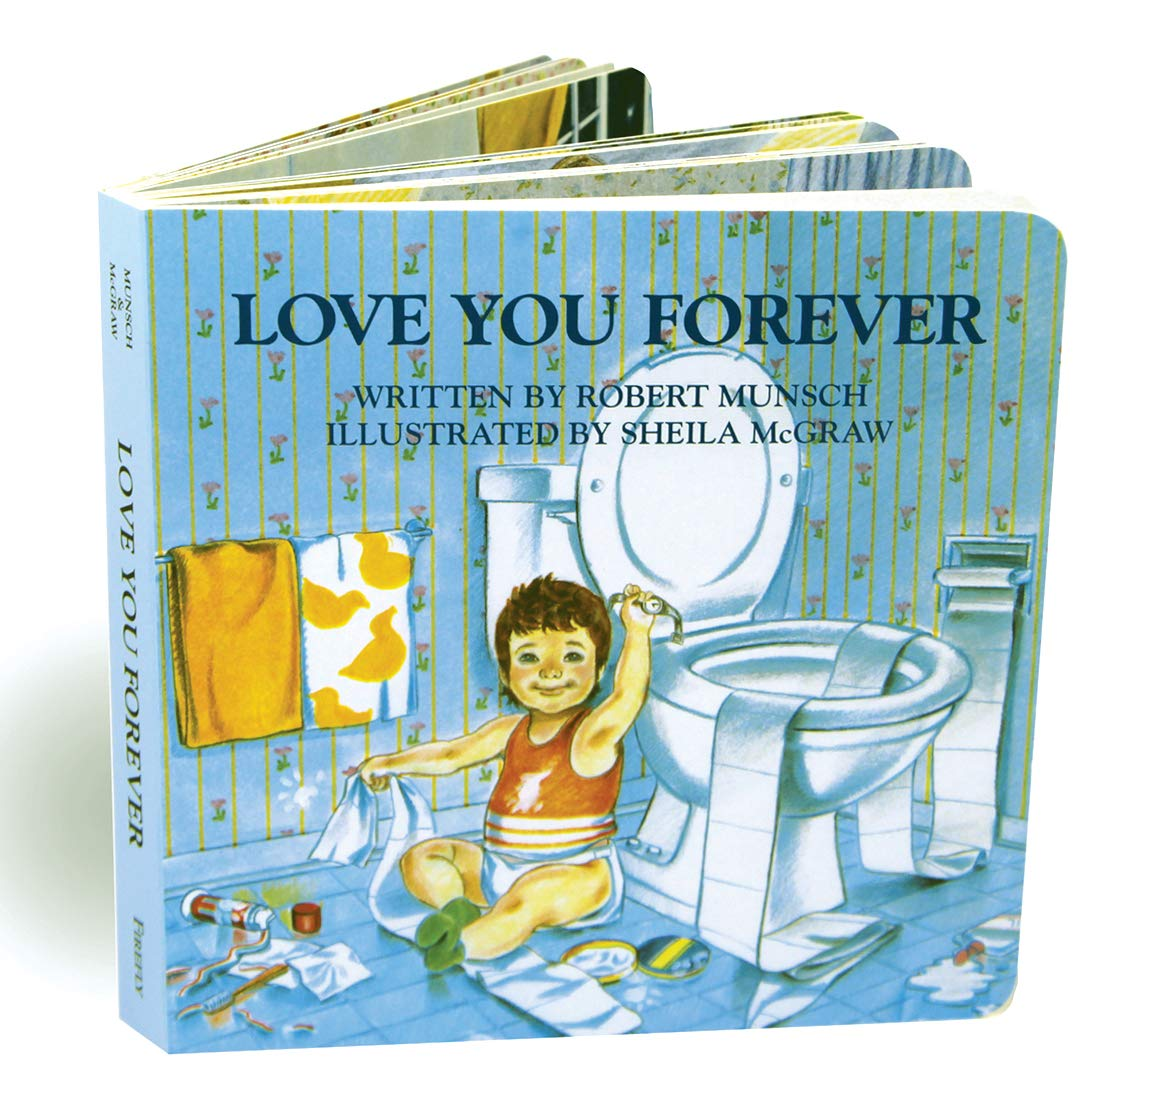 Love You Forever: Munsch, Robert, McGraw, Sheila: 9780228101048: Books -  Amazon.ca